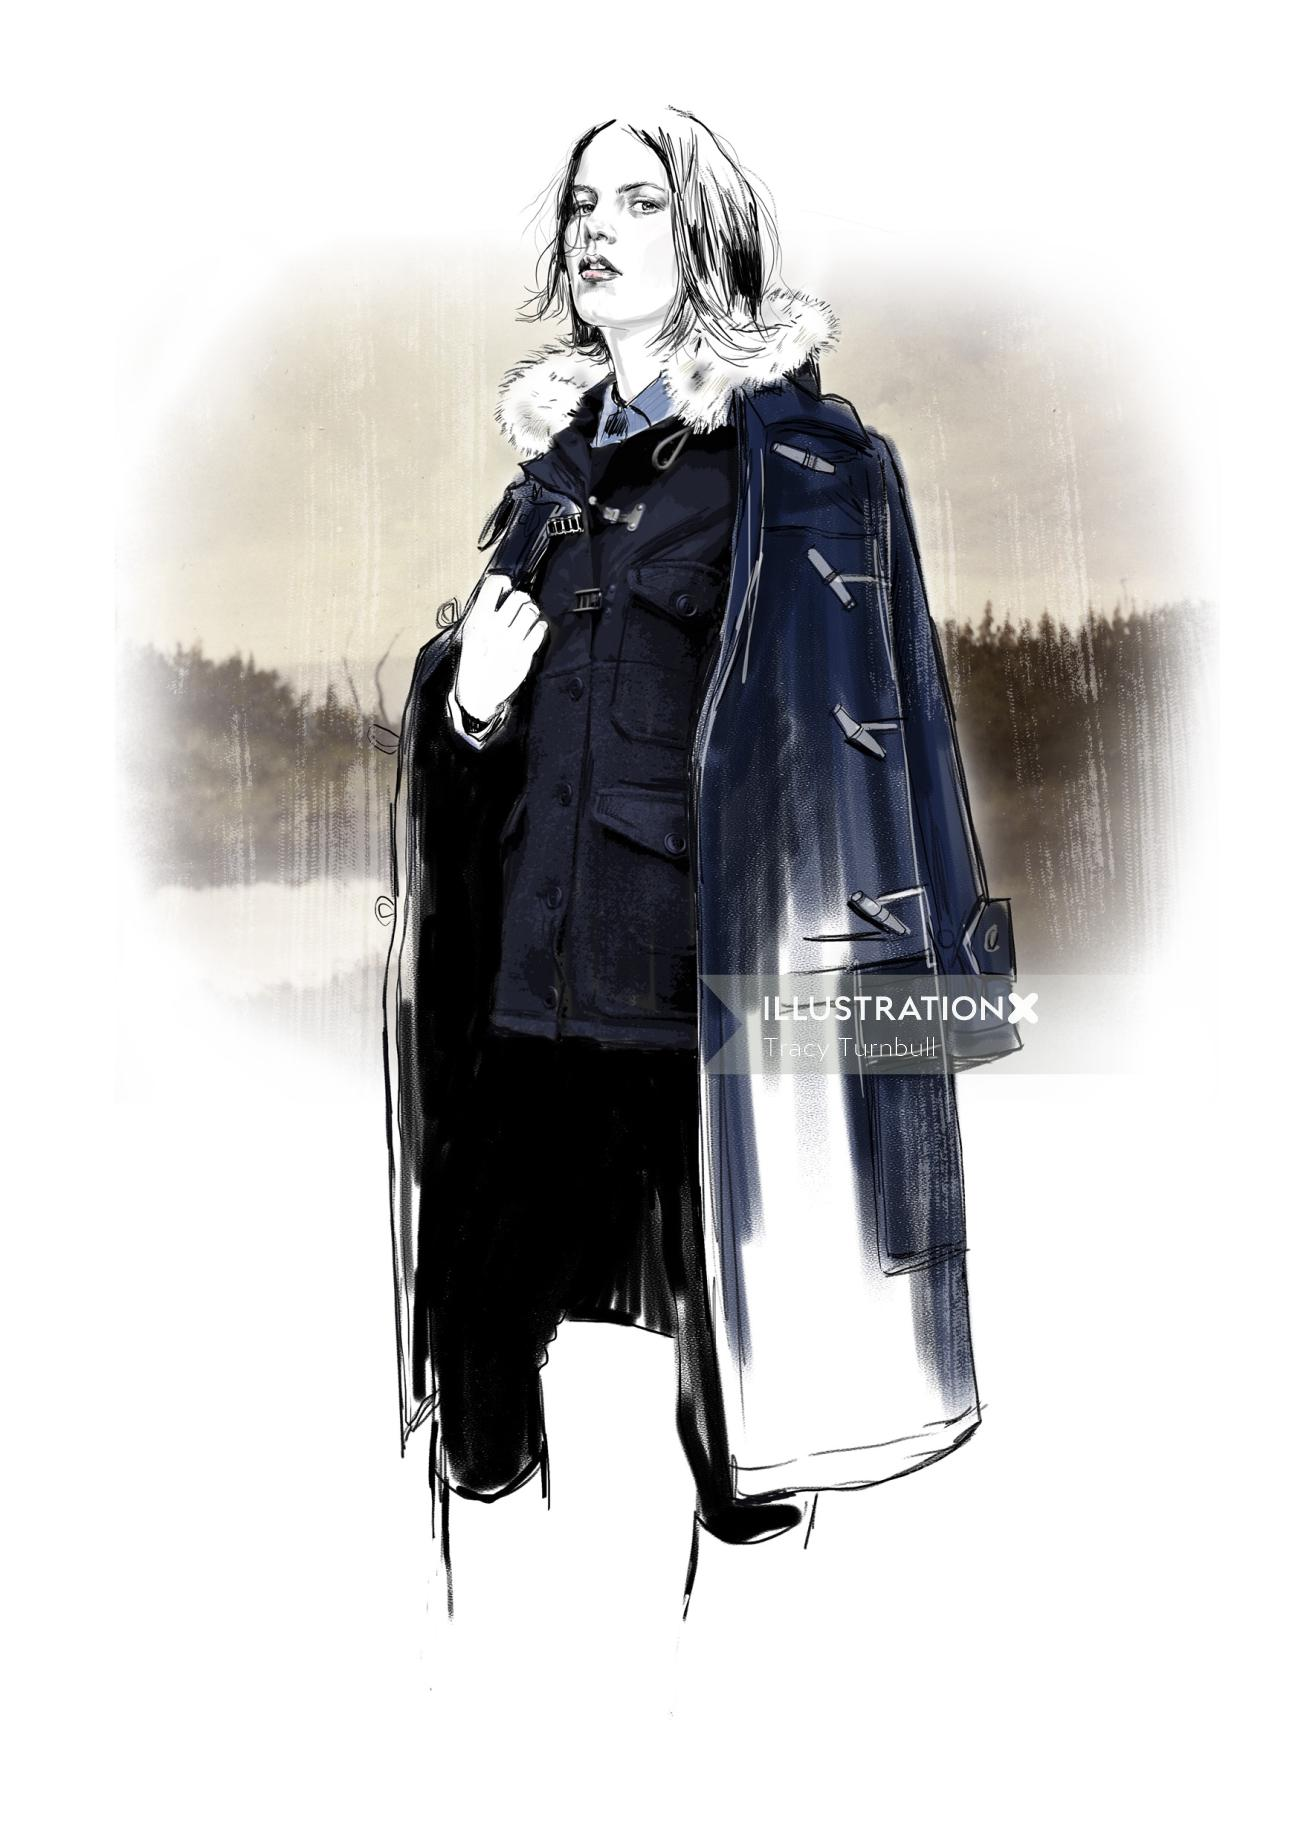 Womenswear duffle jacket illustration